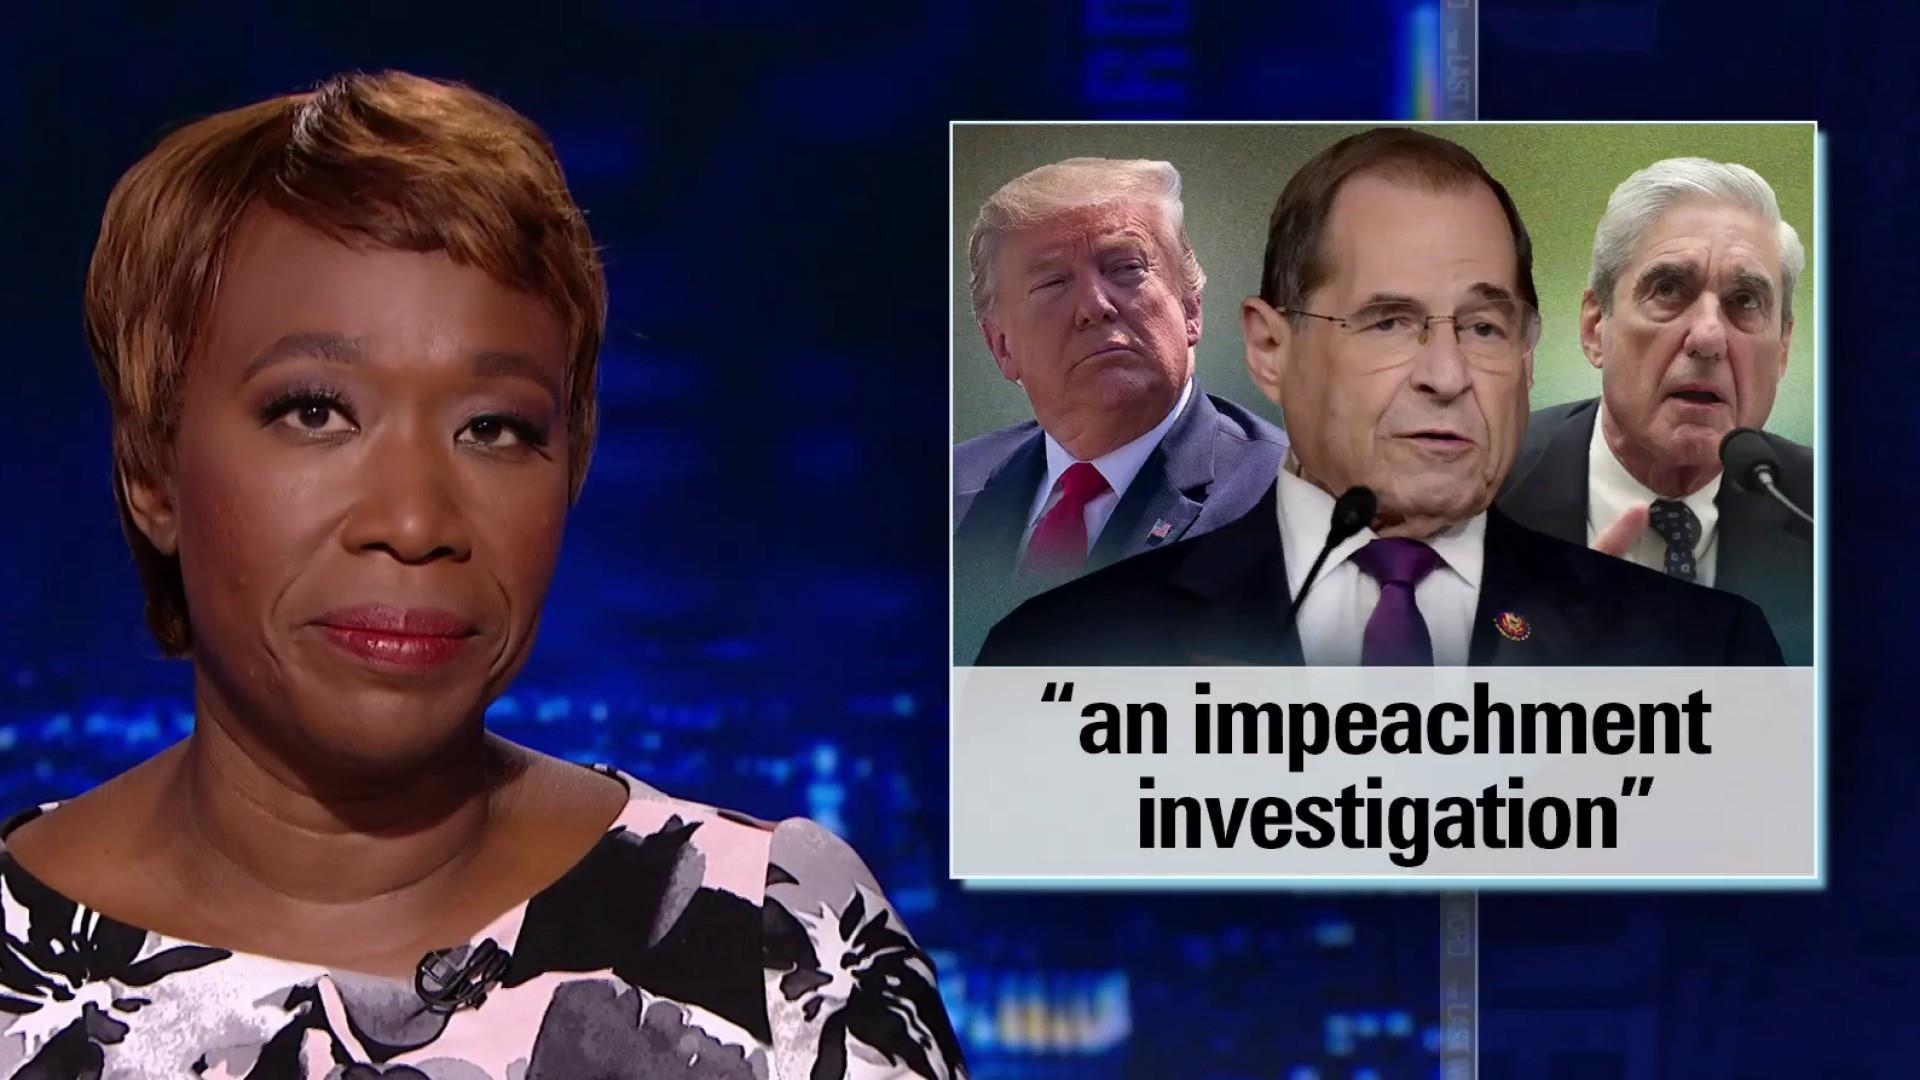 An 'impeachment investigation' no matter the name